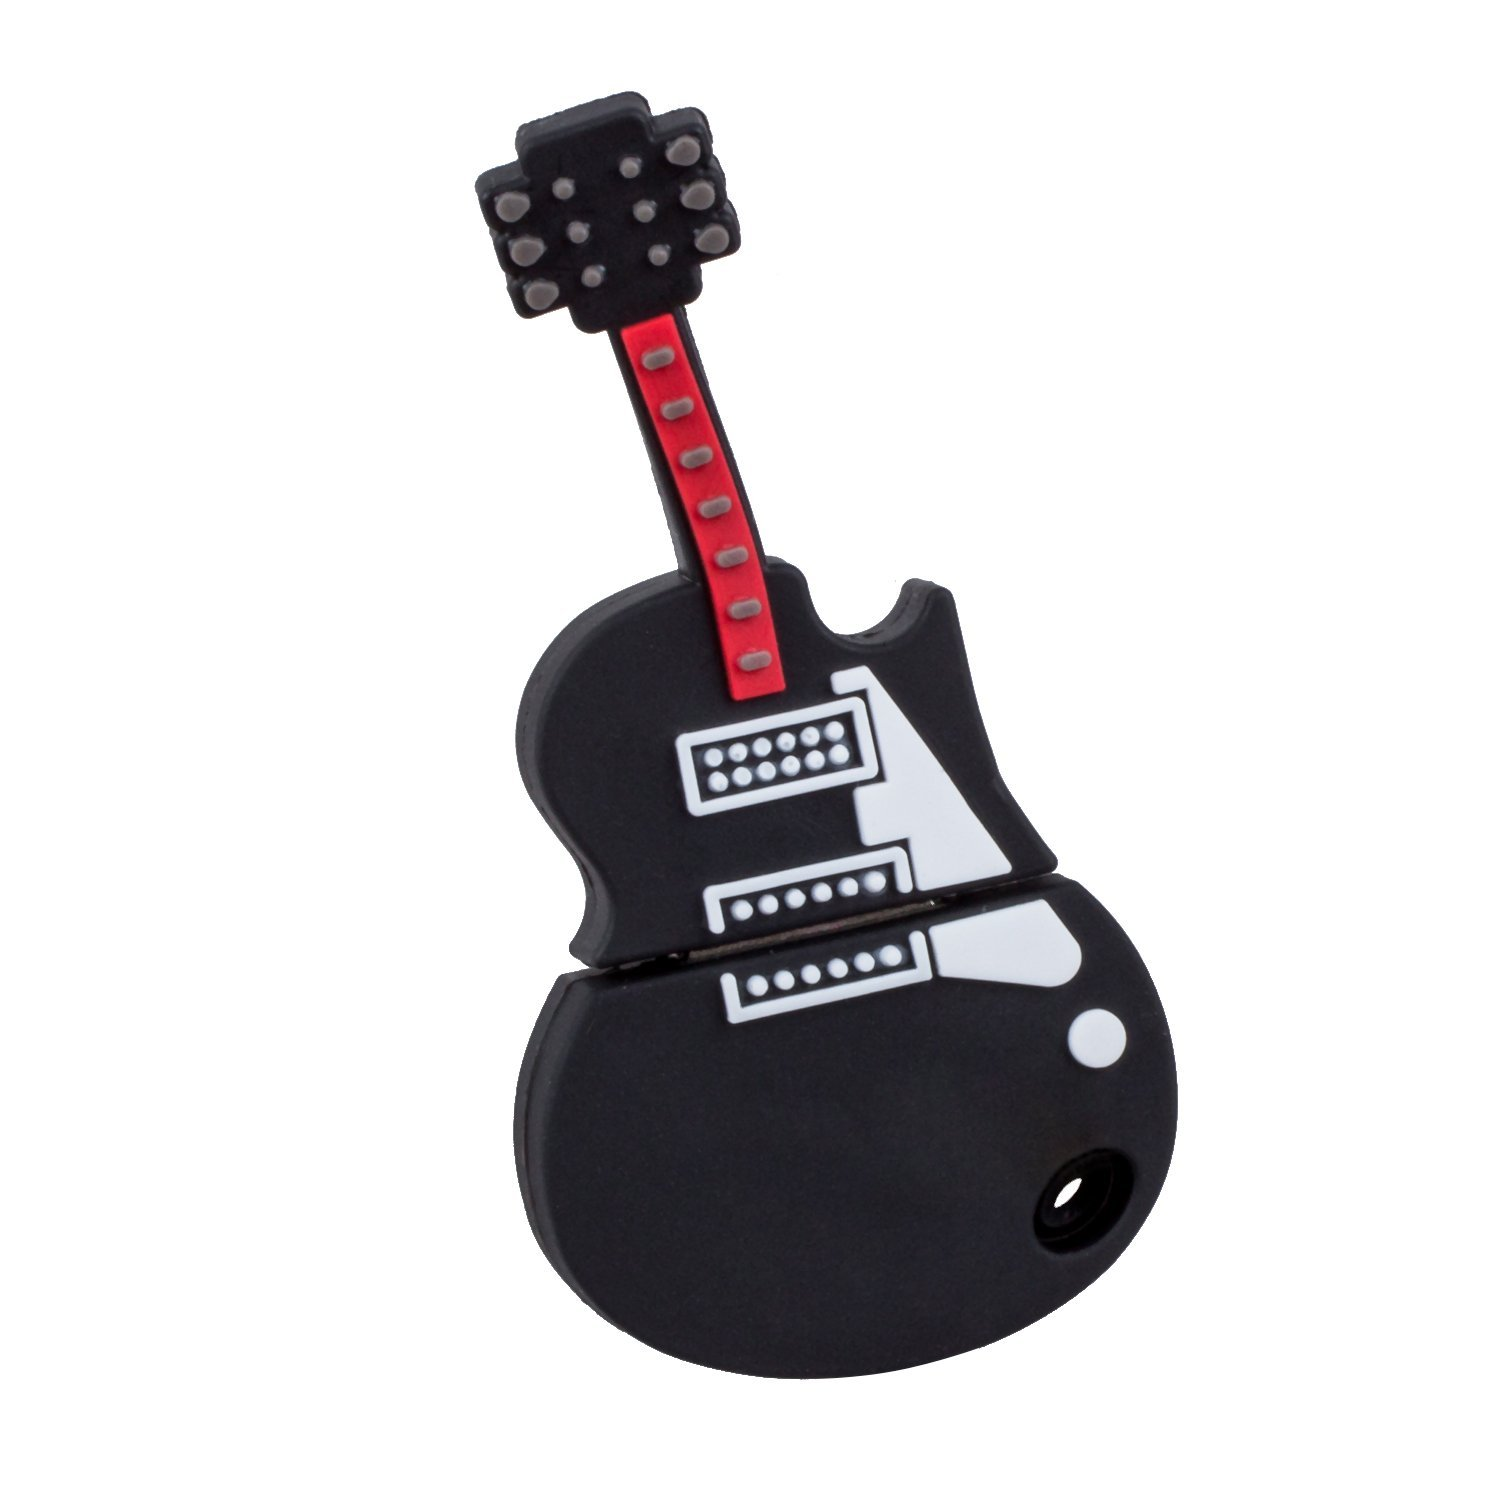 TOOGOO(R) 16GB Novedad Cool Guitarra Estilo USB Flash Pluma Conductor Memoria Palo Regalo: Amazon.es: Electrónica